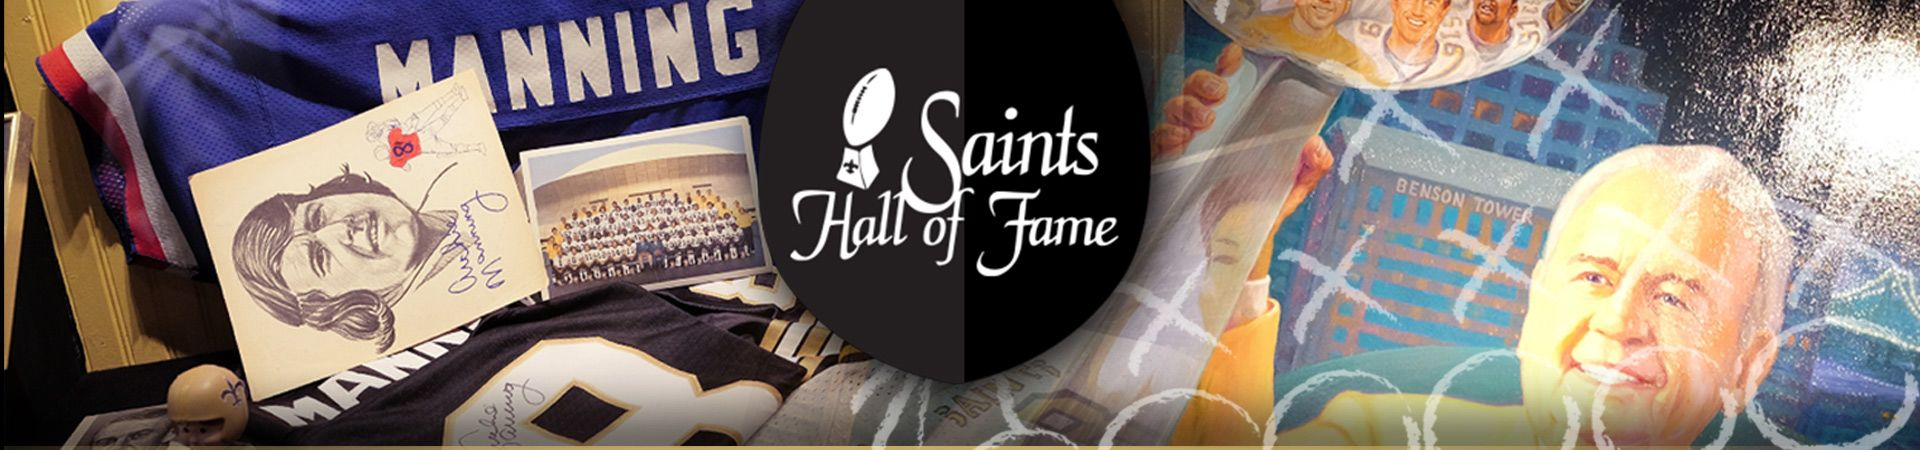 Promo-Page-Header-Image-Saints-Hall-Of-Fame-1920x400-060418